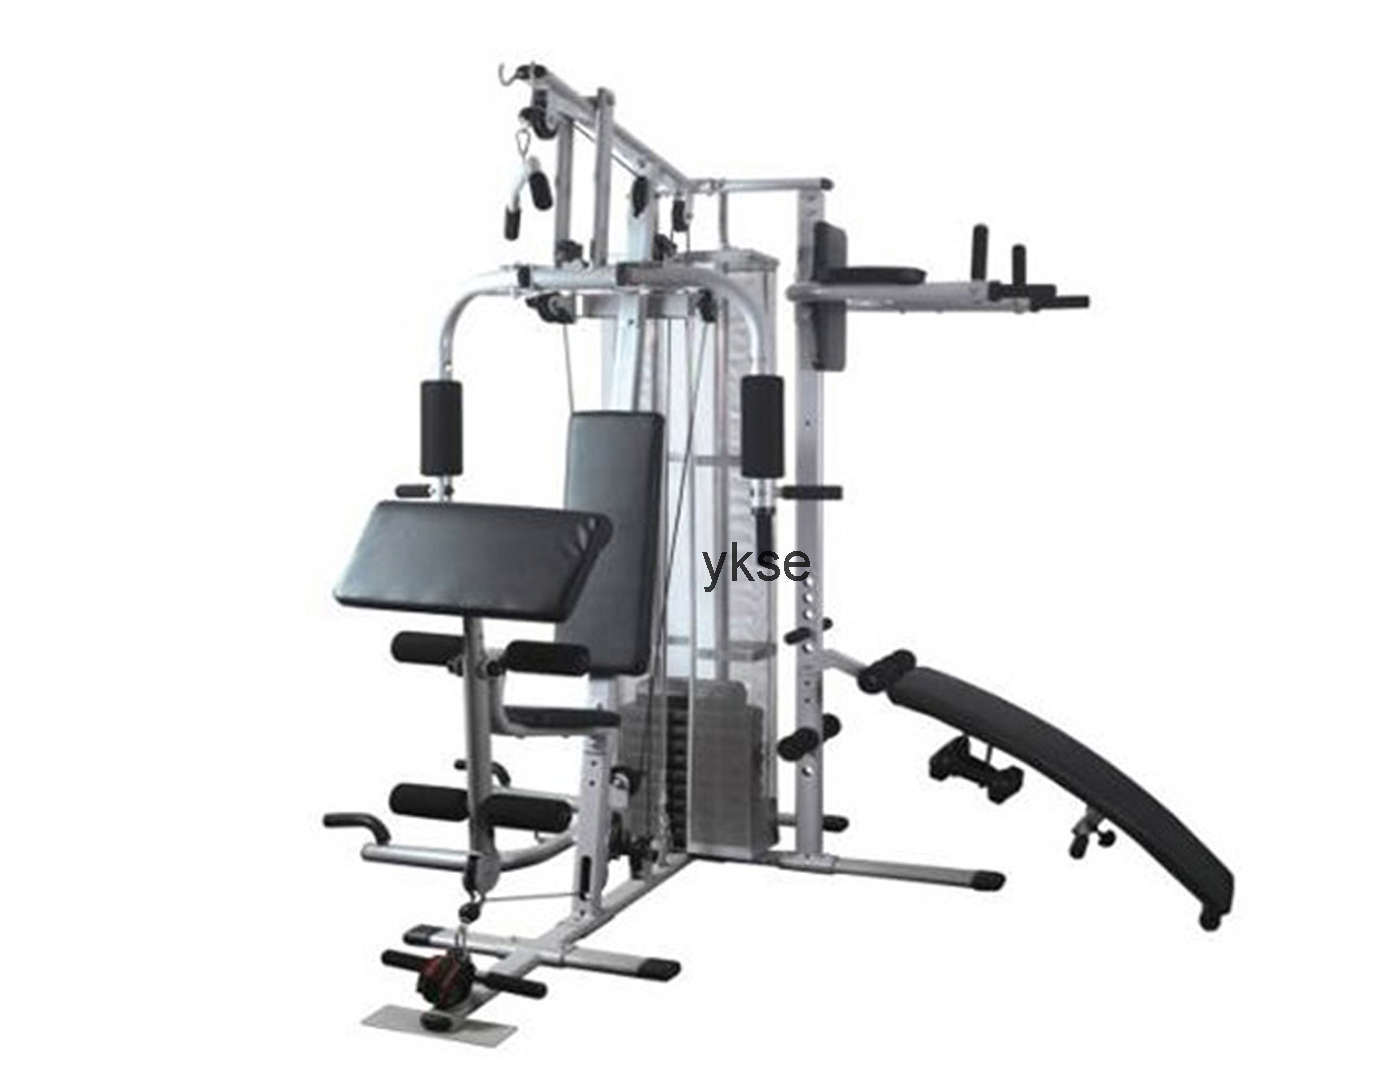 Gym equipment toronto jobs